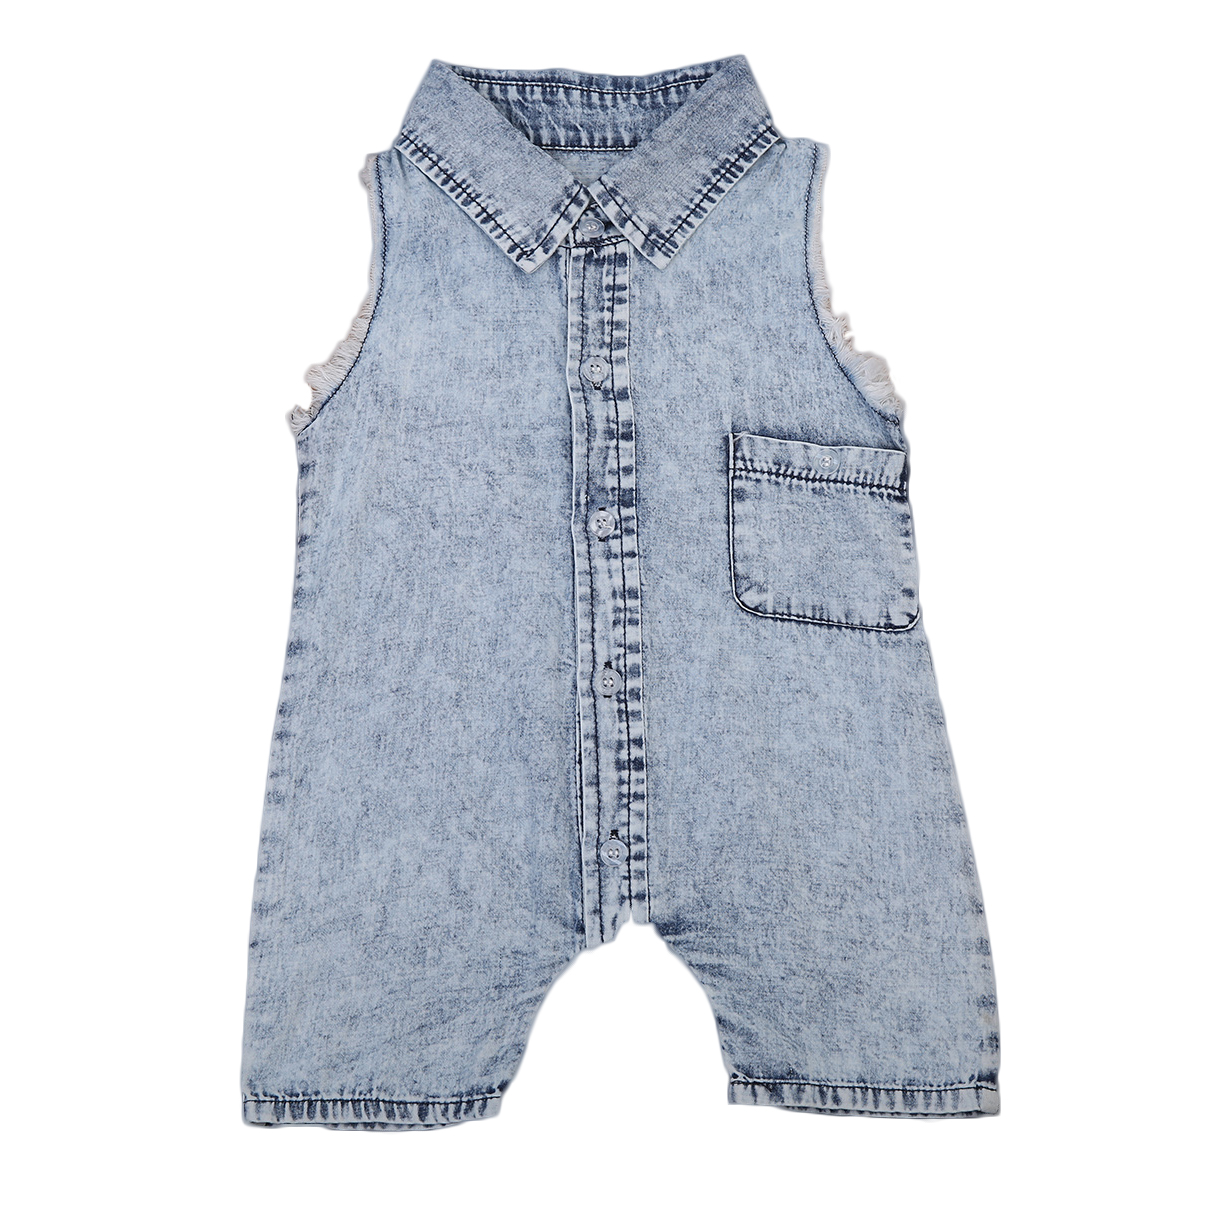 2017 Summer Denim Newborn Baby Boys Sleeveless Romper Infant Boy Girl Jumpsuit Clothes Outfit baby clothing summer infant newborn baby romper short sleeve girl boys jumpsuit new born baby clothes